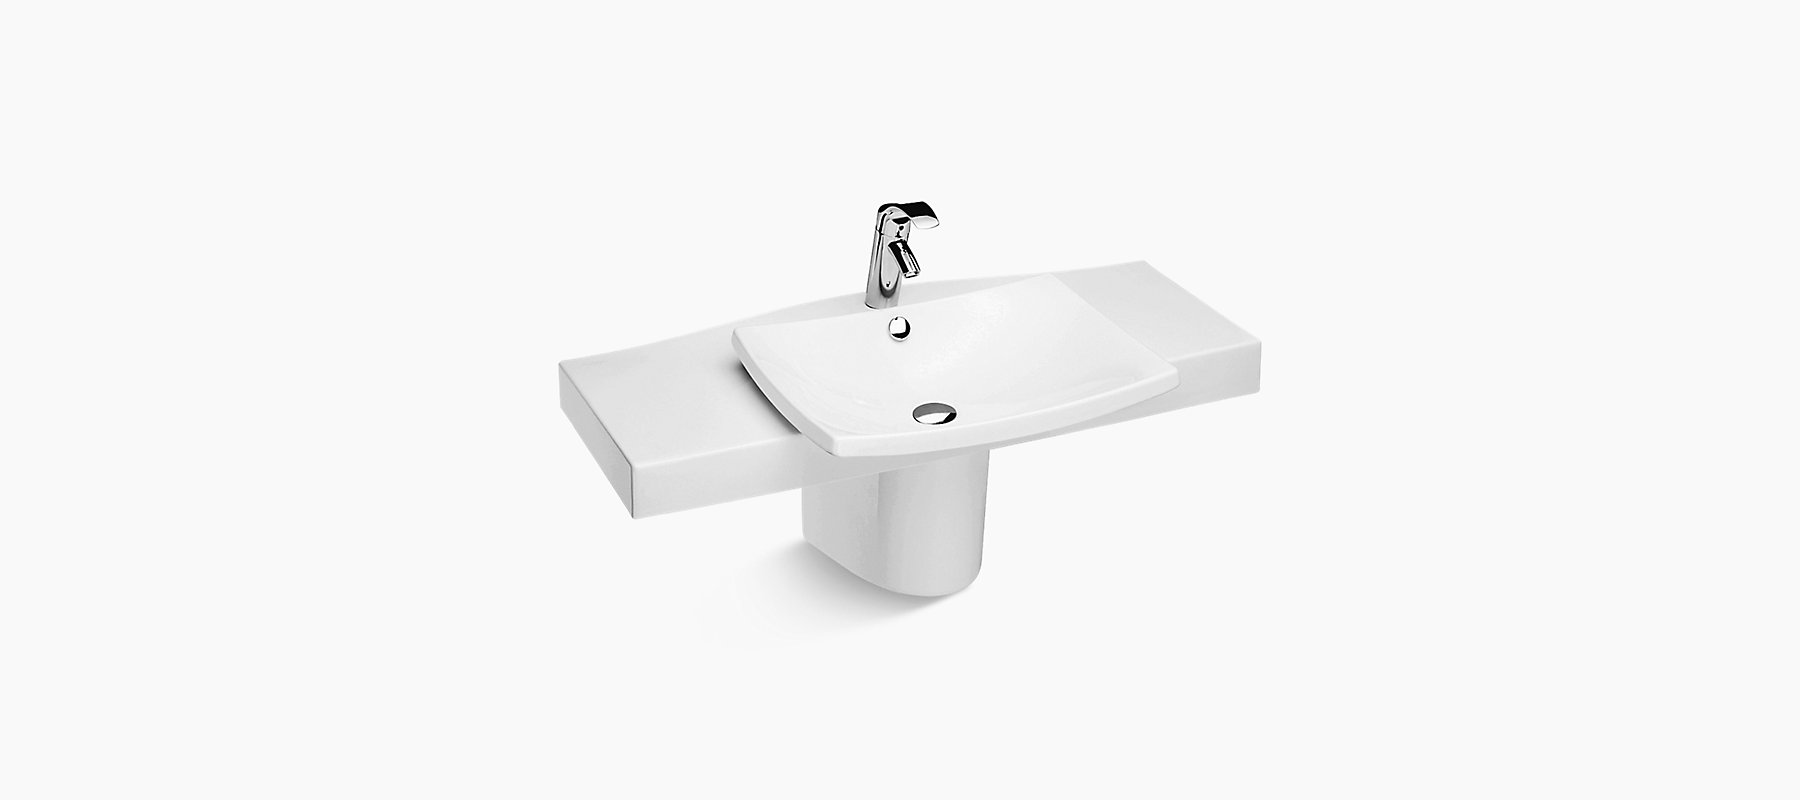 Escale Half Pedestal Lavatory With Single Faucet Hole K 19797w Kohler